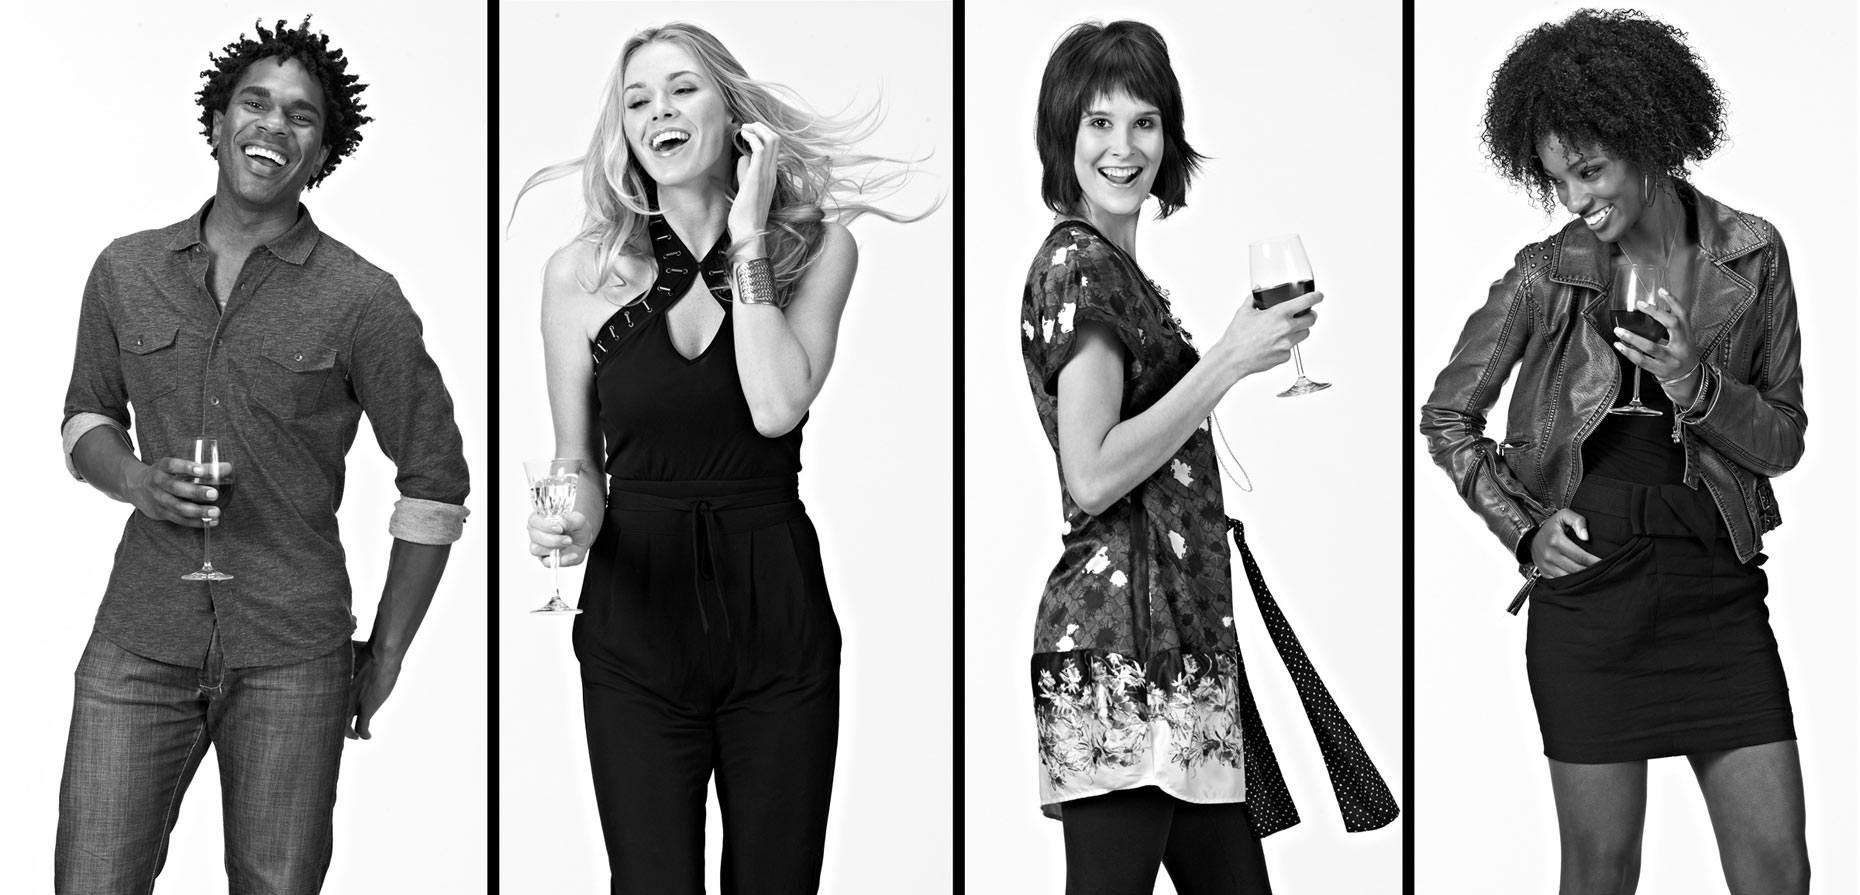 Models/cocktails/b&w/white background/lifestyle photo